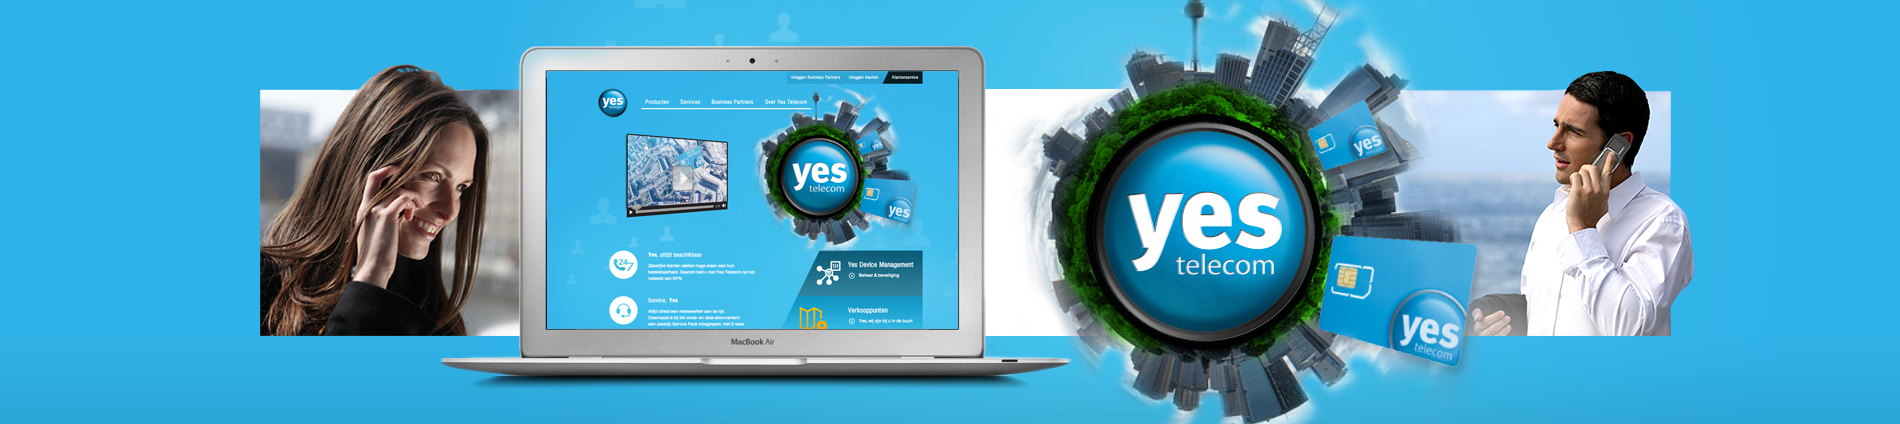 yes telecom, webdevelopment, front-end development, webdesign, wordpress website laten maken